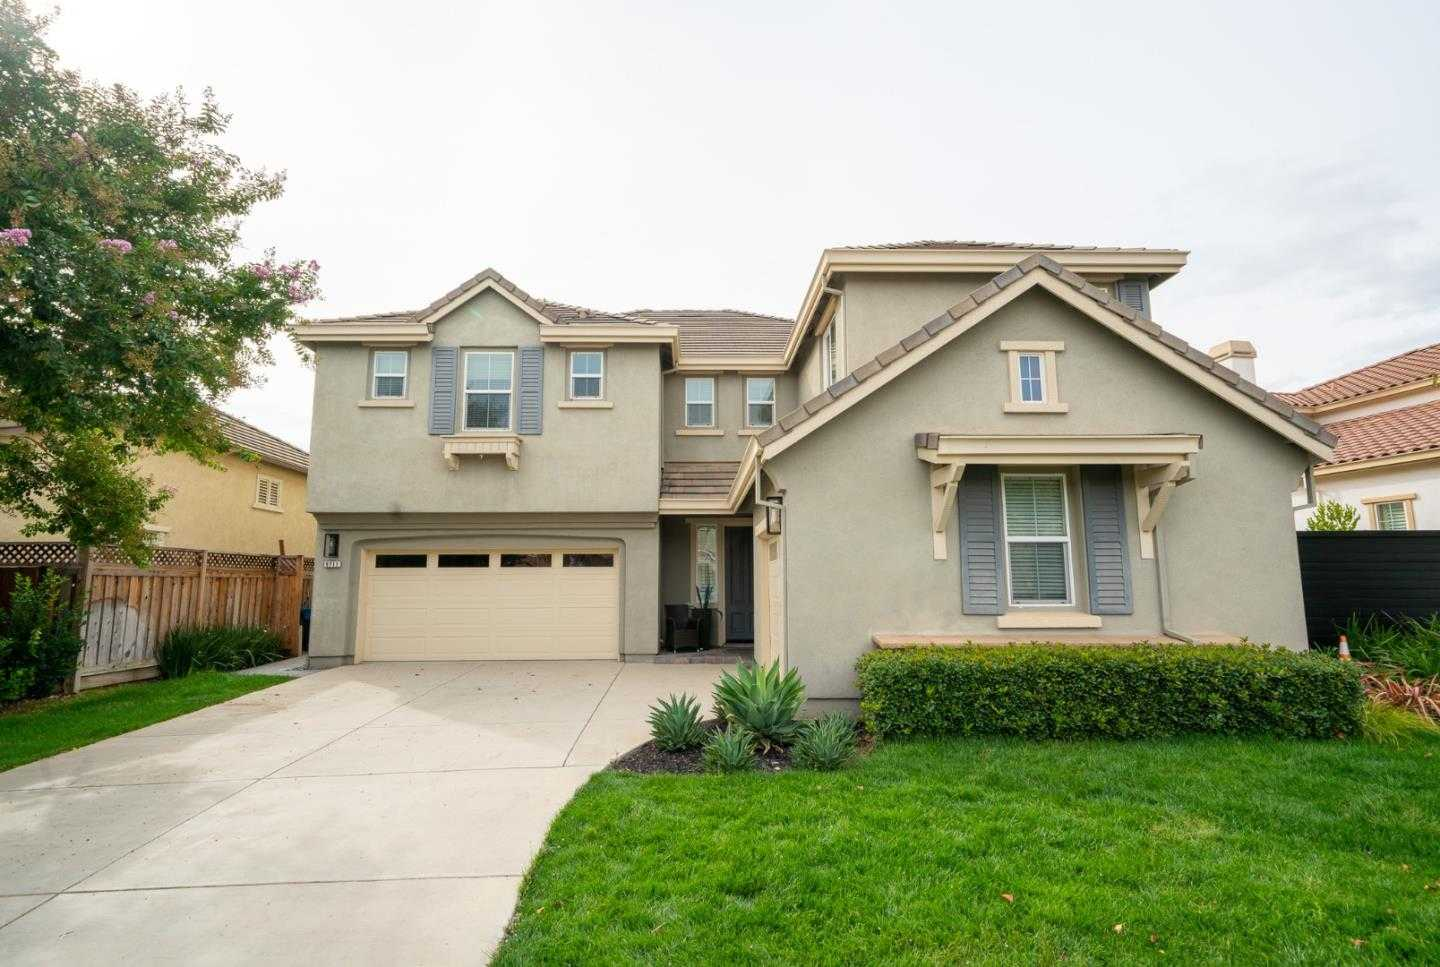 $998,000 - 5Br/4Ba -  for Sale in Gilroy